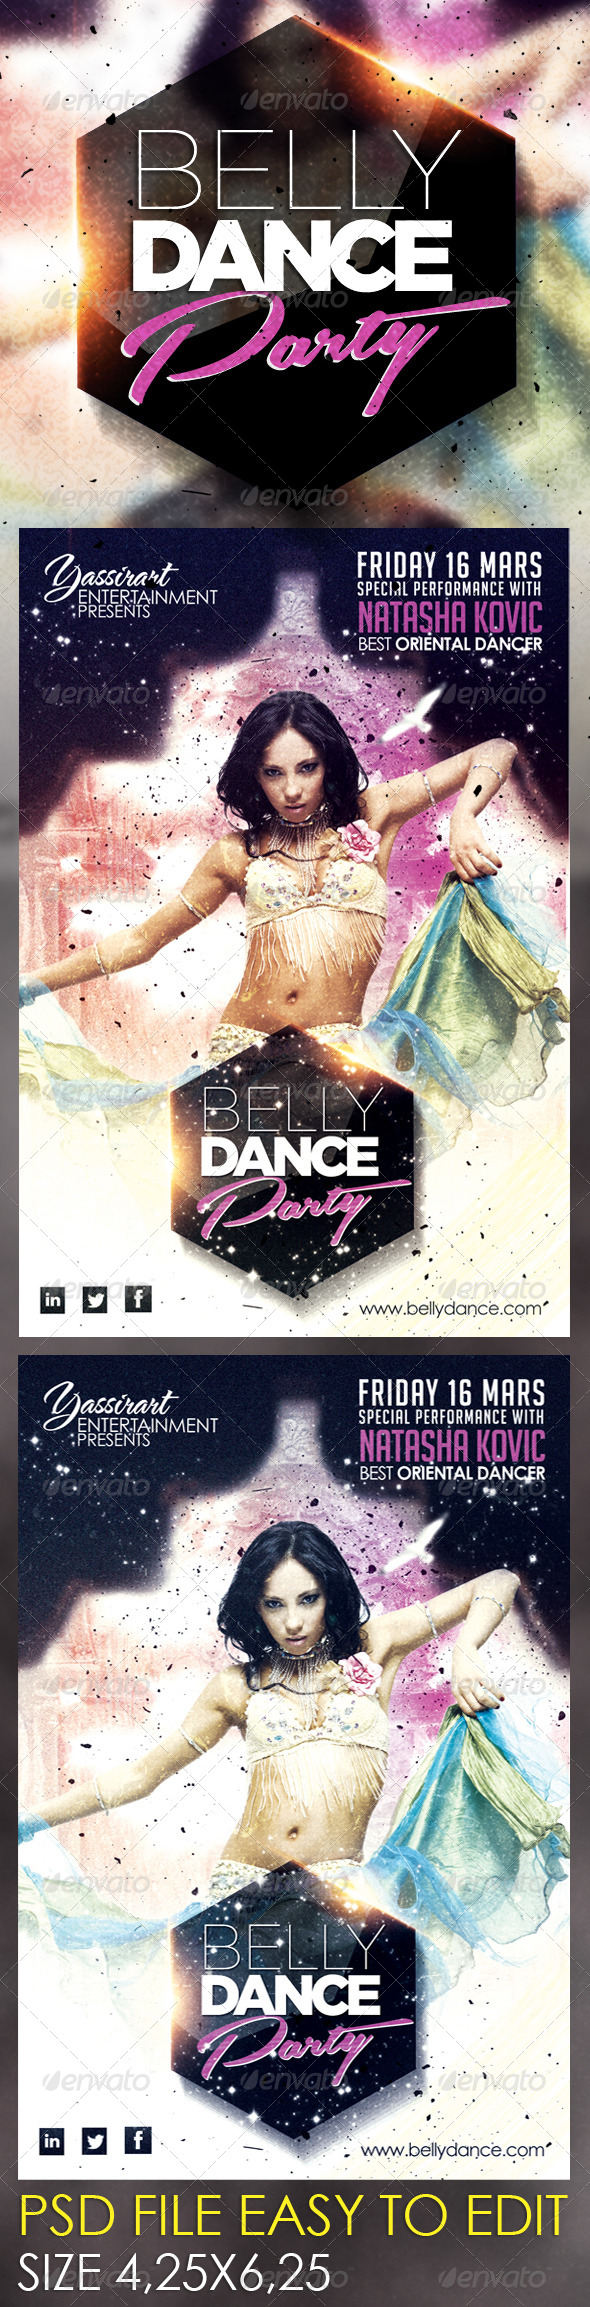 Belly Dance Party Flyer Template - Clubs & Parties Events